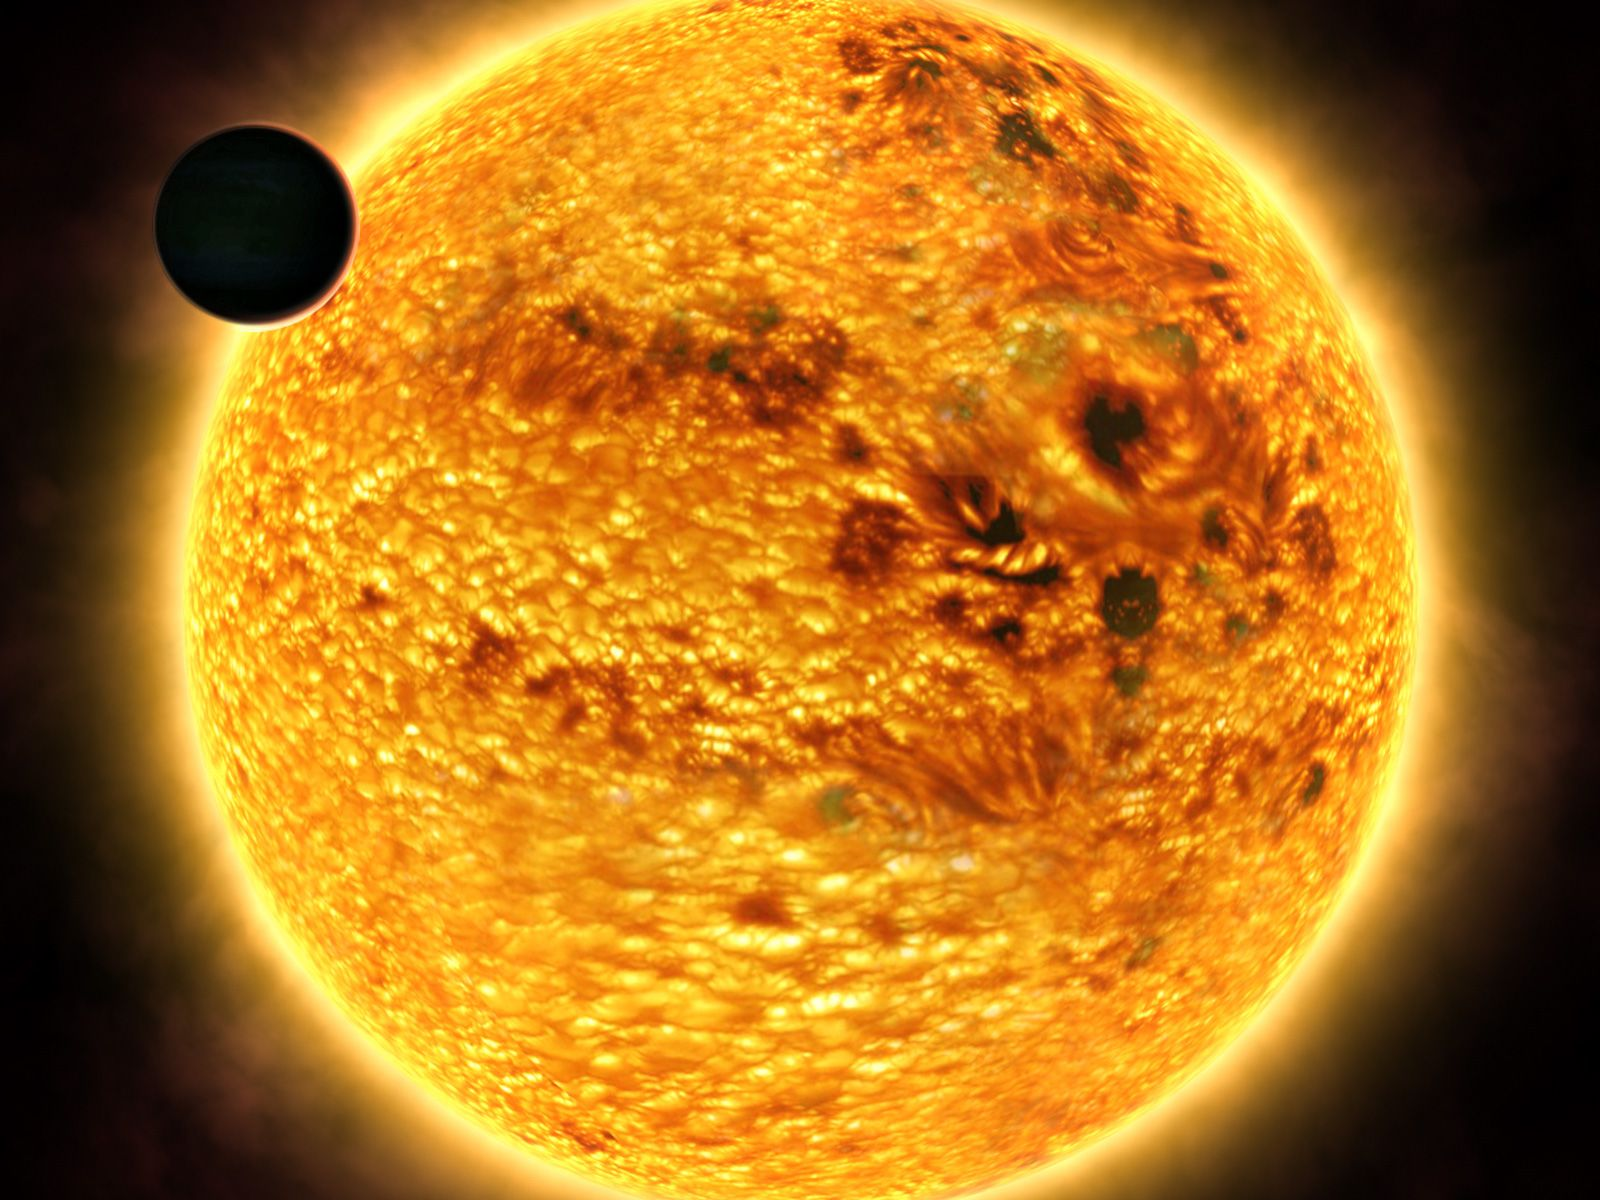 Pictures From The Hubble Telescope | The Sun, Hubble ...